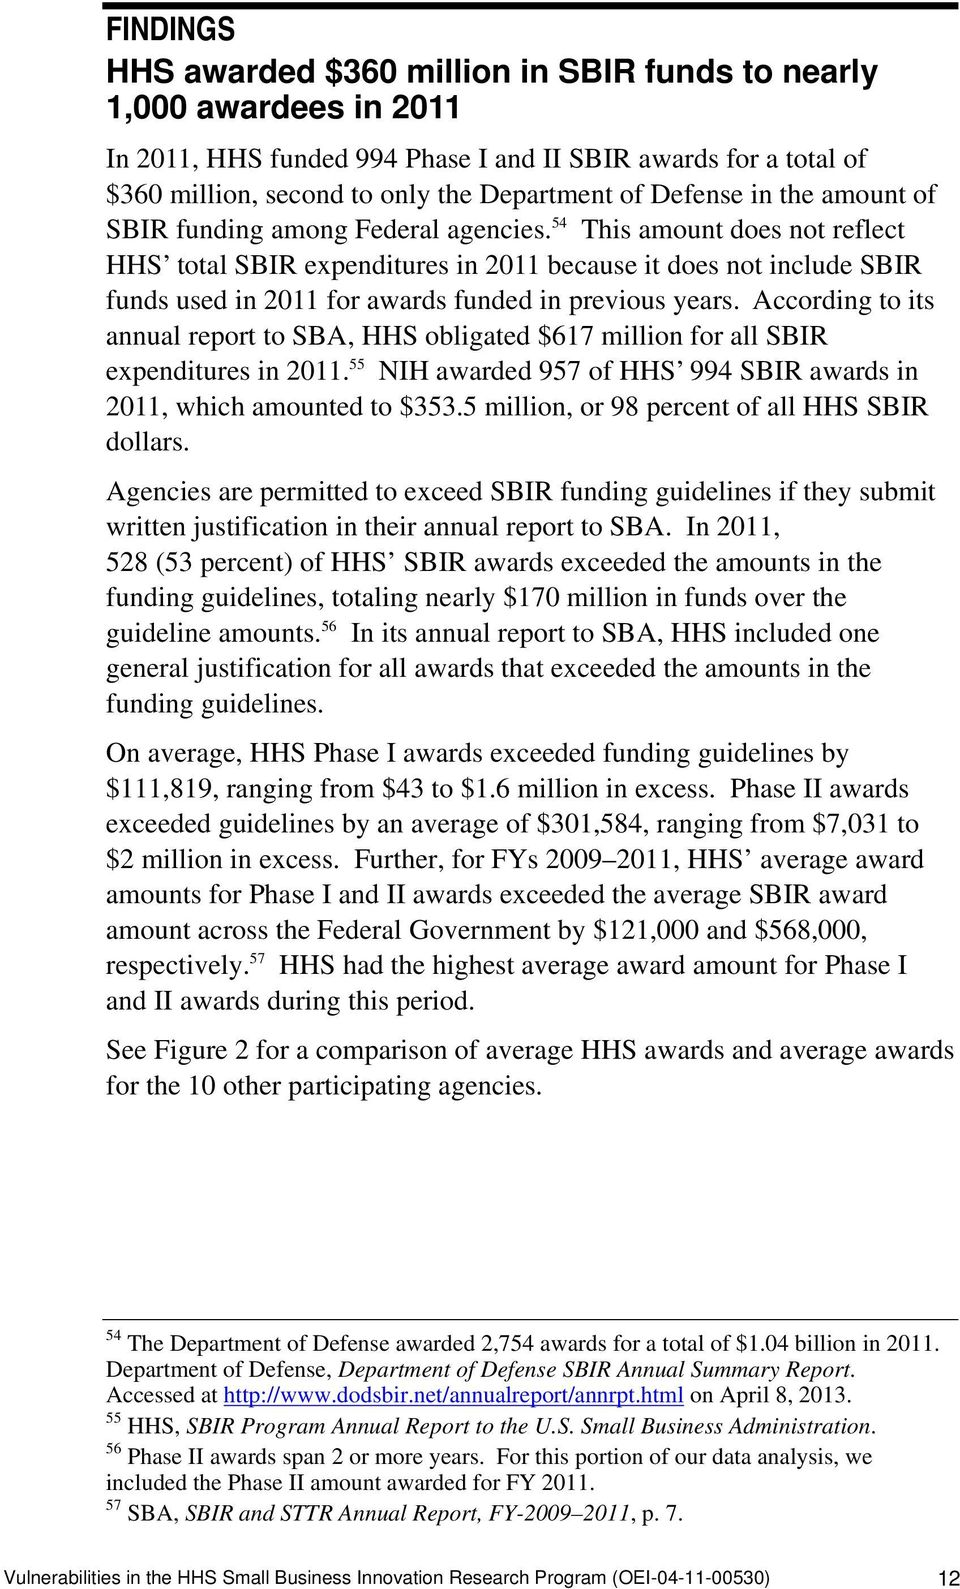 54 This amount does not reflect HHS total SBIR expenditures in 2011 because it does not include SBIR funds used in 2011 for awards funded in previous years.